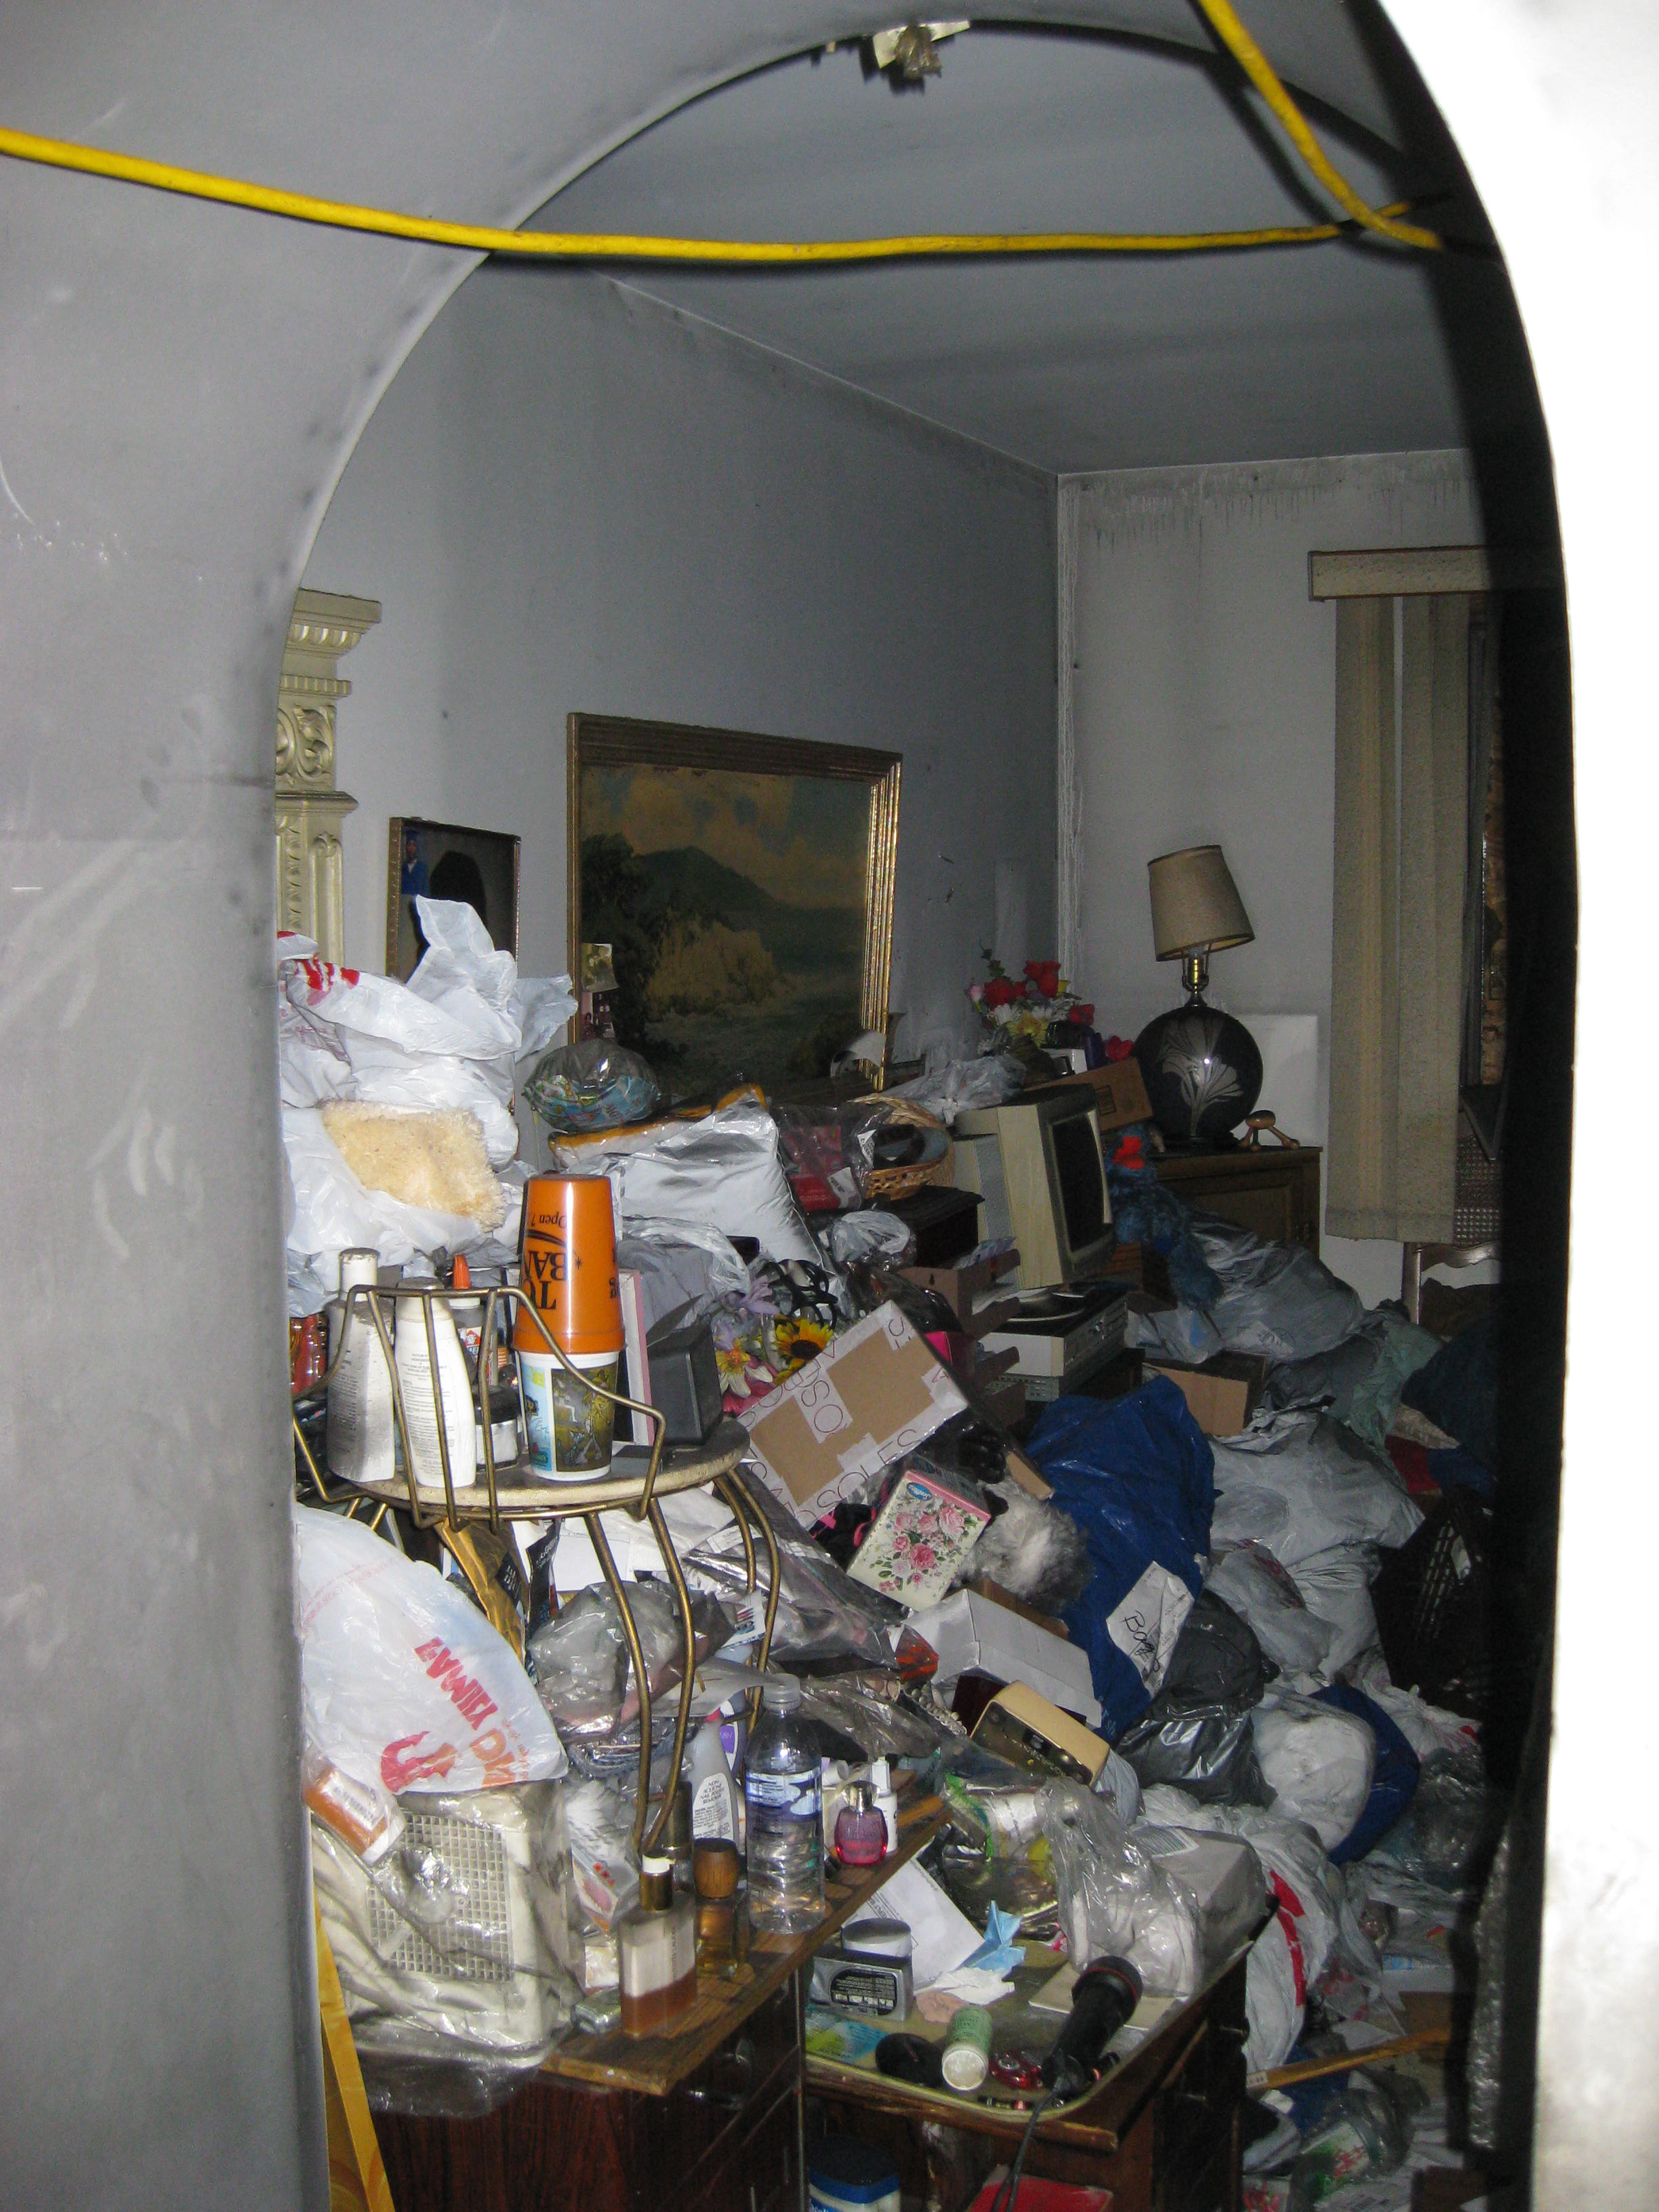 5 critical factors affecting hoarding claims propertycasualty360. Black Bedroom Furniture Sets. Home Design Ideas